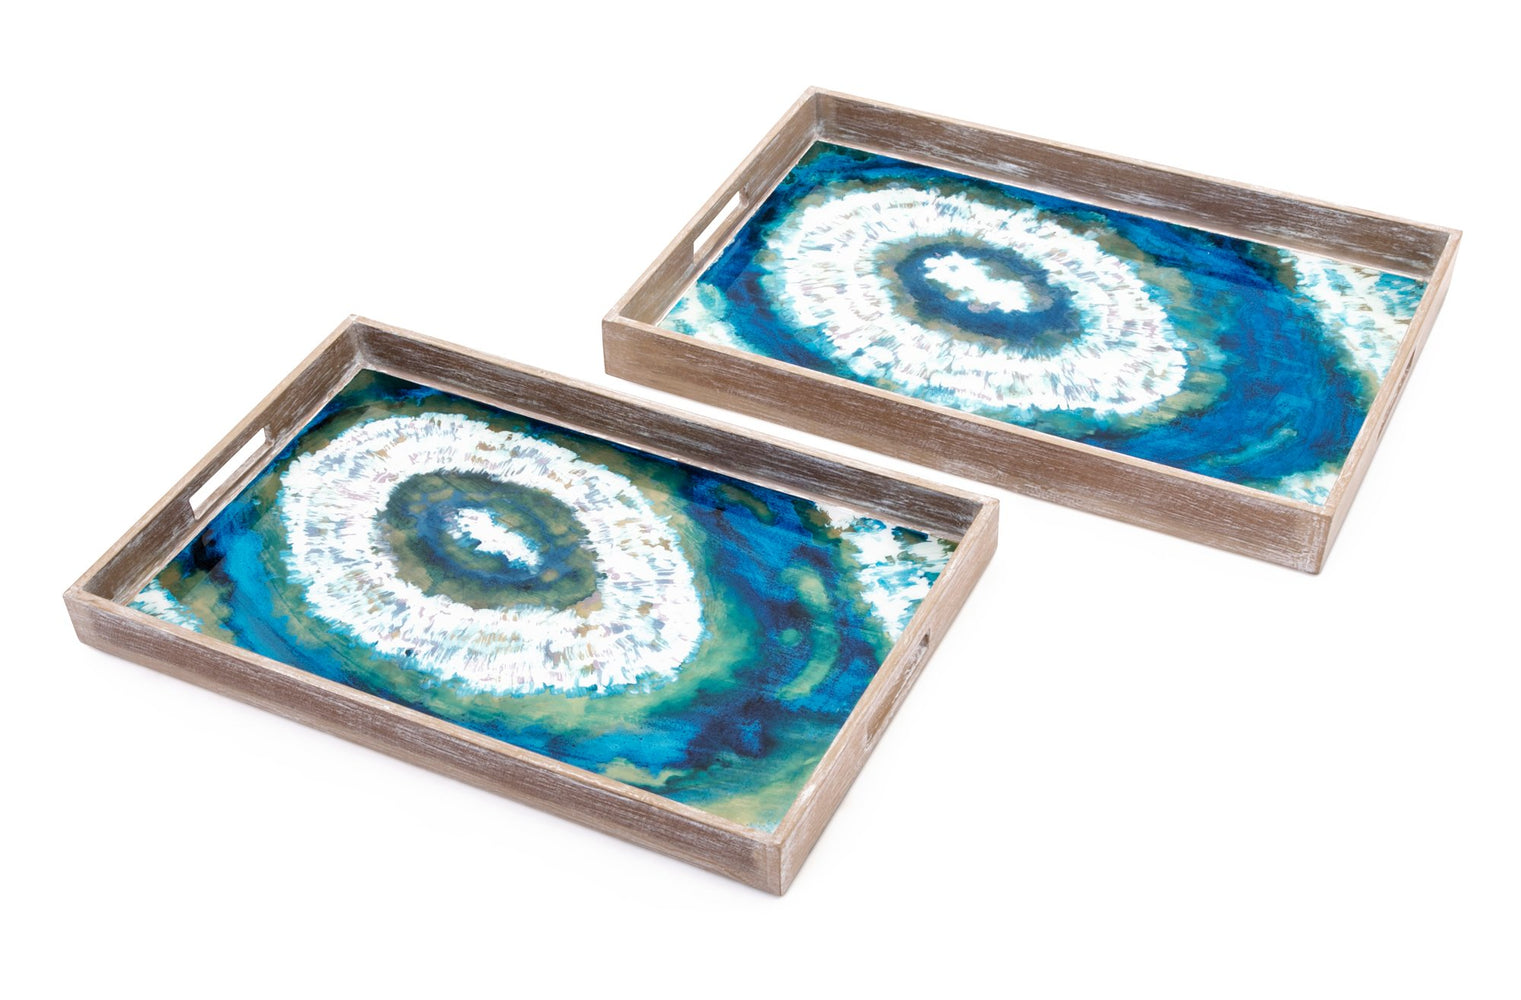 Painted-Decorative-Trays